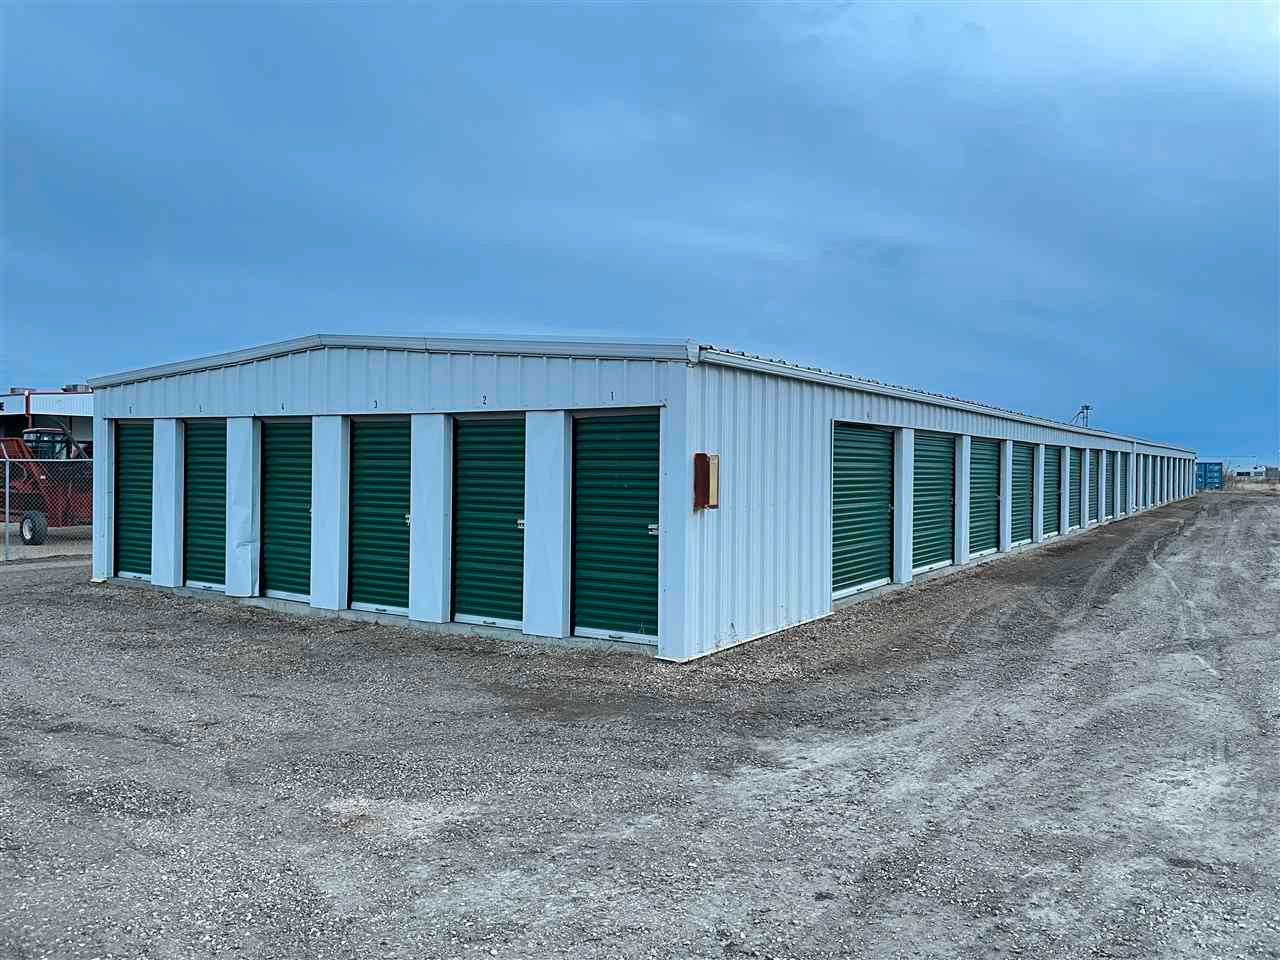 Main Photo: 31 59422 44 hwy Highway: Westlock Business with Property for sale : MLS®# E4242191